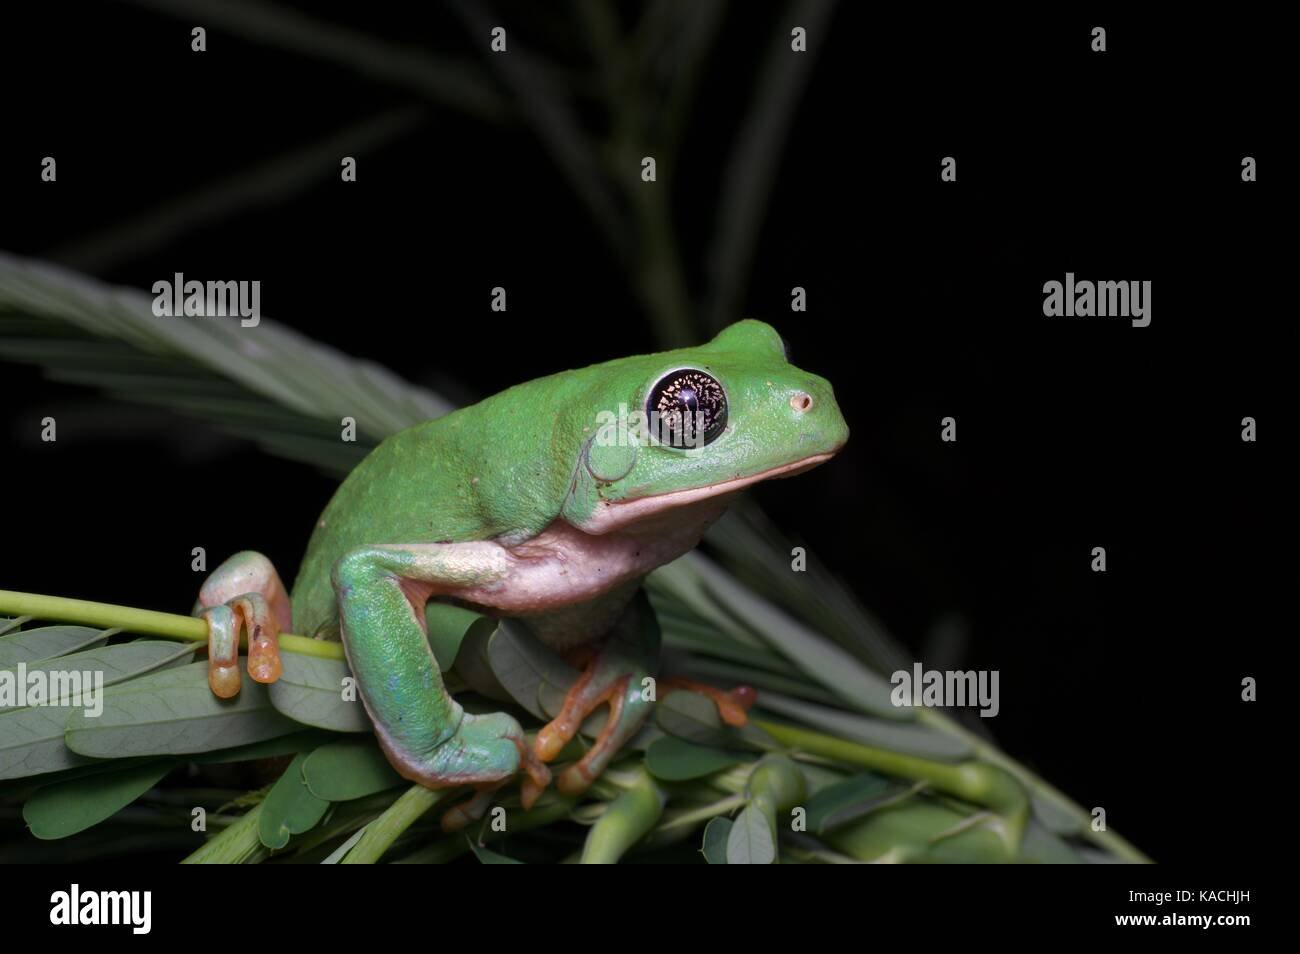 A Mexican Leaf Frog (Pachymedusa dacnicolor) perched on a small plant near Alamos, Sonora, Mexico - Stock Image